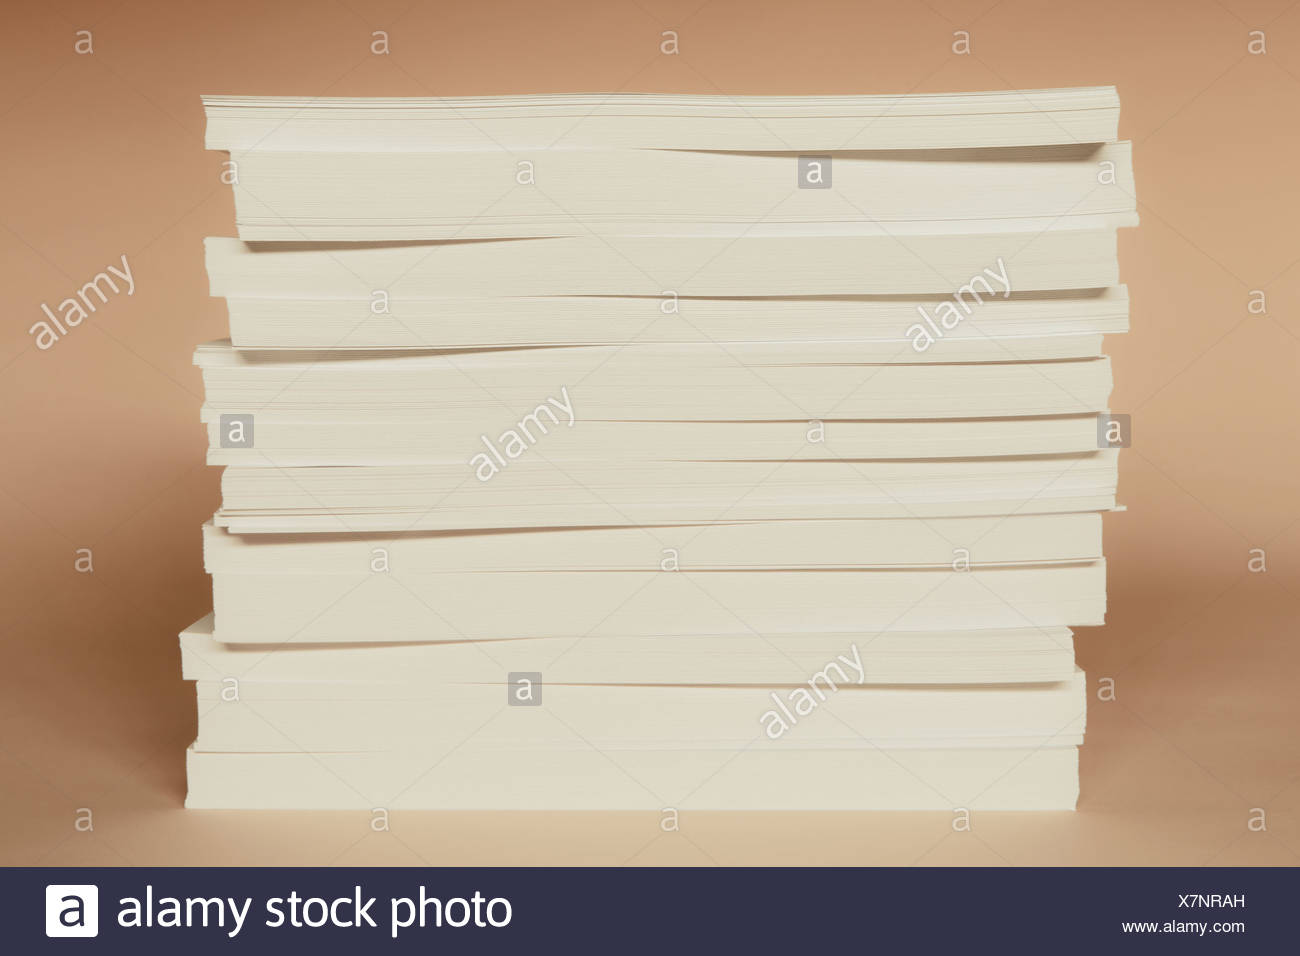 A stack of recycled white paper, paper supplies. - Stock Image